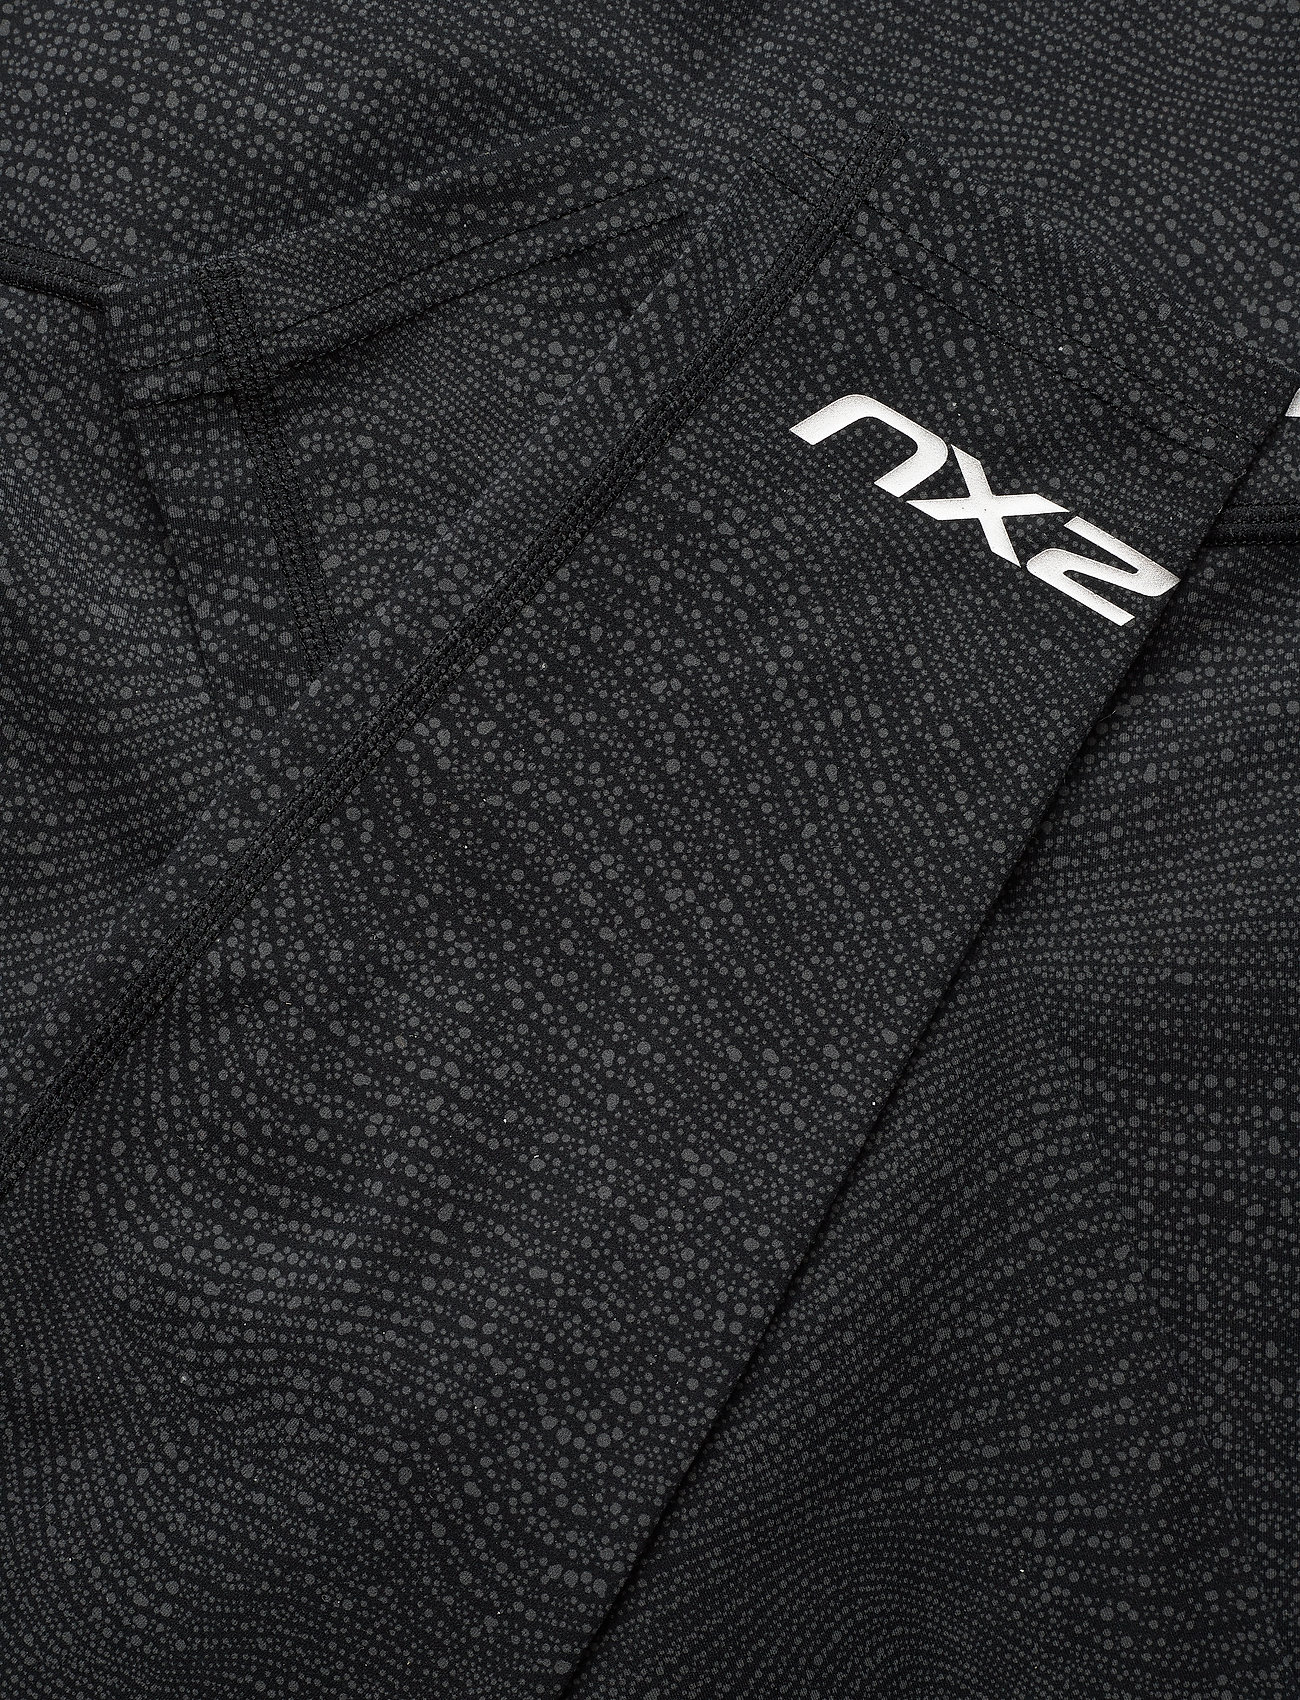 2XU Fitness Hi-rise Comp Tights (Wave Spot Charcoal/silver), 399.50